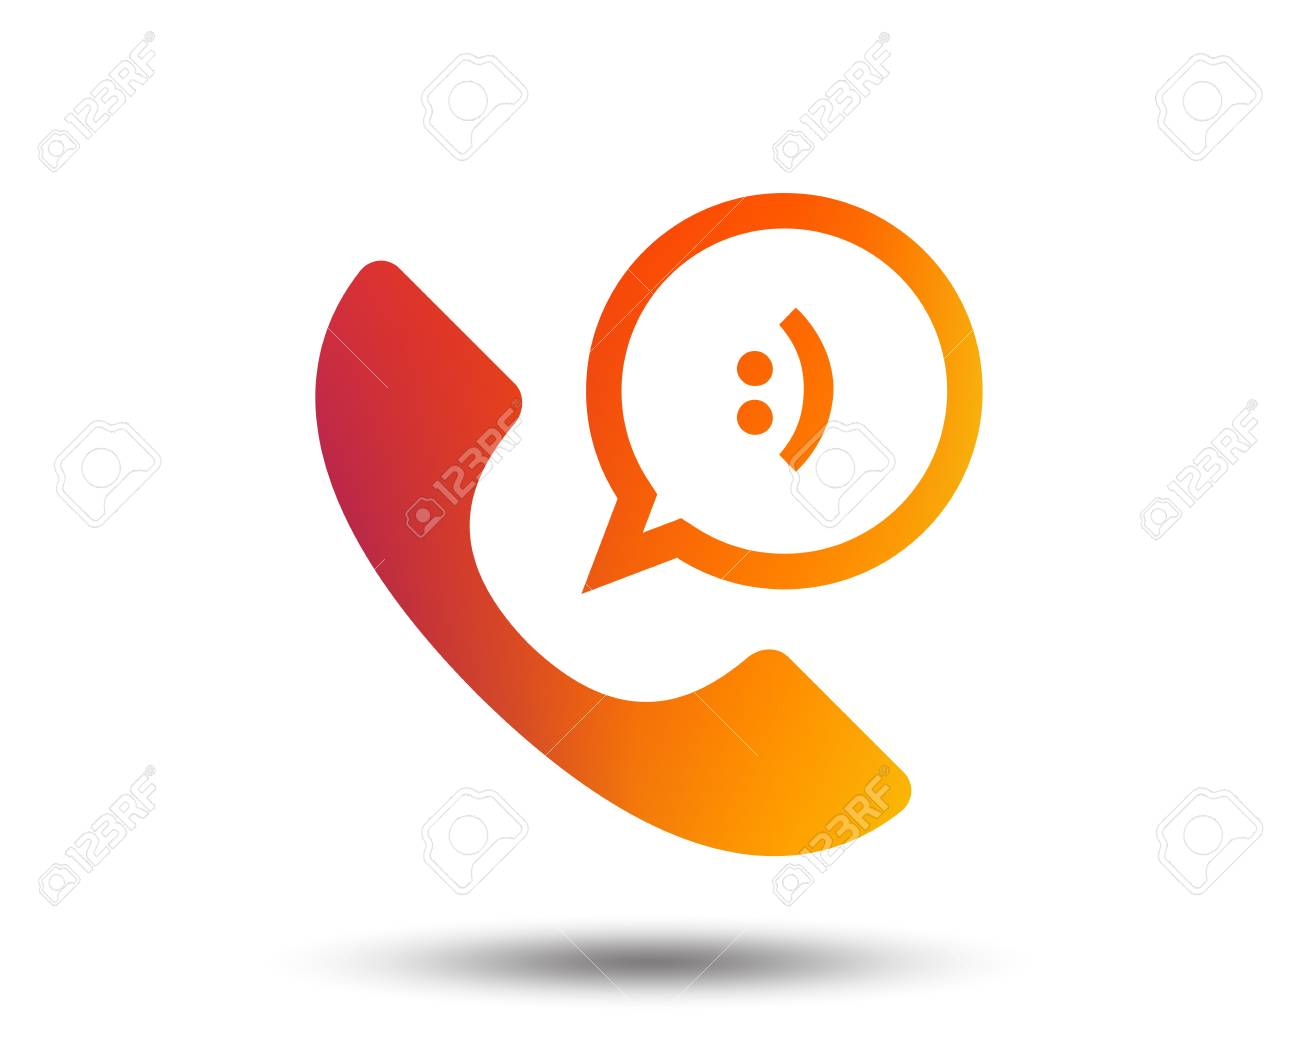 Phone sign icon. Support symbol. Call center. Speech bubble with smile. Blurred gradient design element. Vivid graphic flat icon. - 97193818